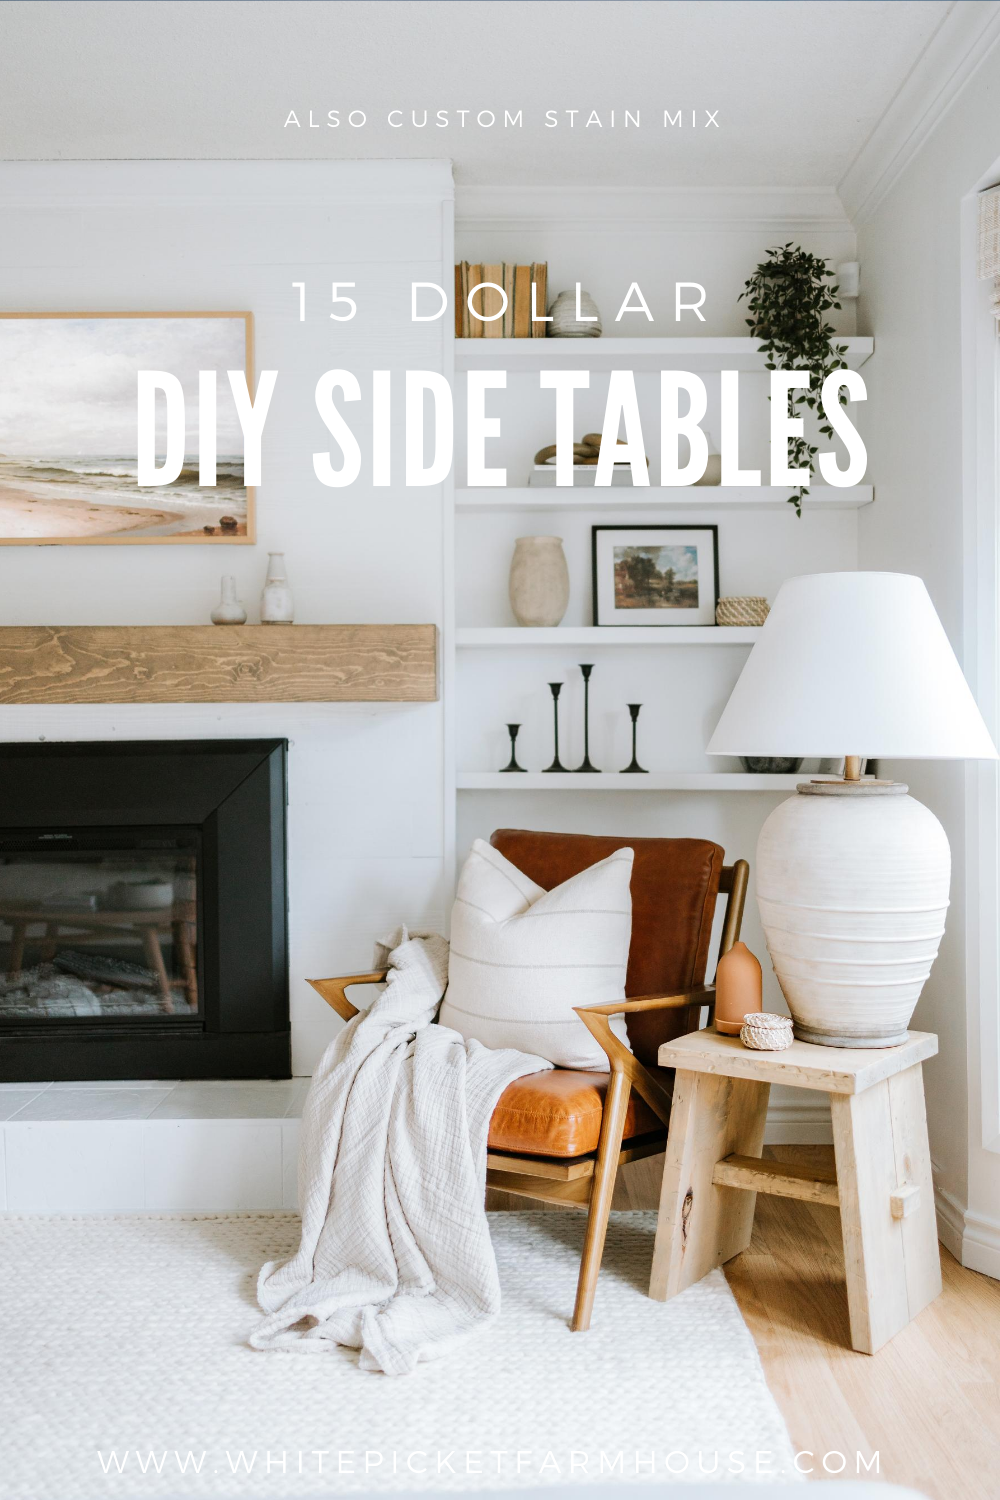 DIY 15 Dollar Side Tables. How We Made Two Side Tables For Under 30 Dollars with Minimal Tools. These Side Tables Were Dreamt Up From The Skinny Bench Trend. Also a Custom Stain Mix To Get a Restoration Hardware Look.